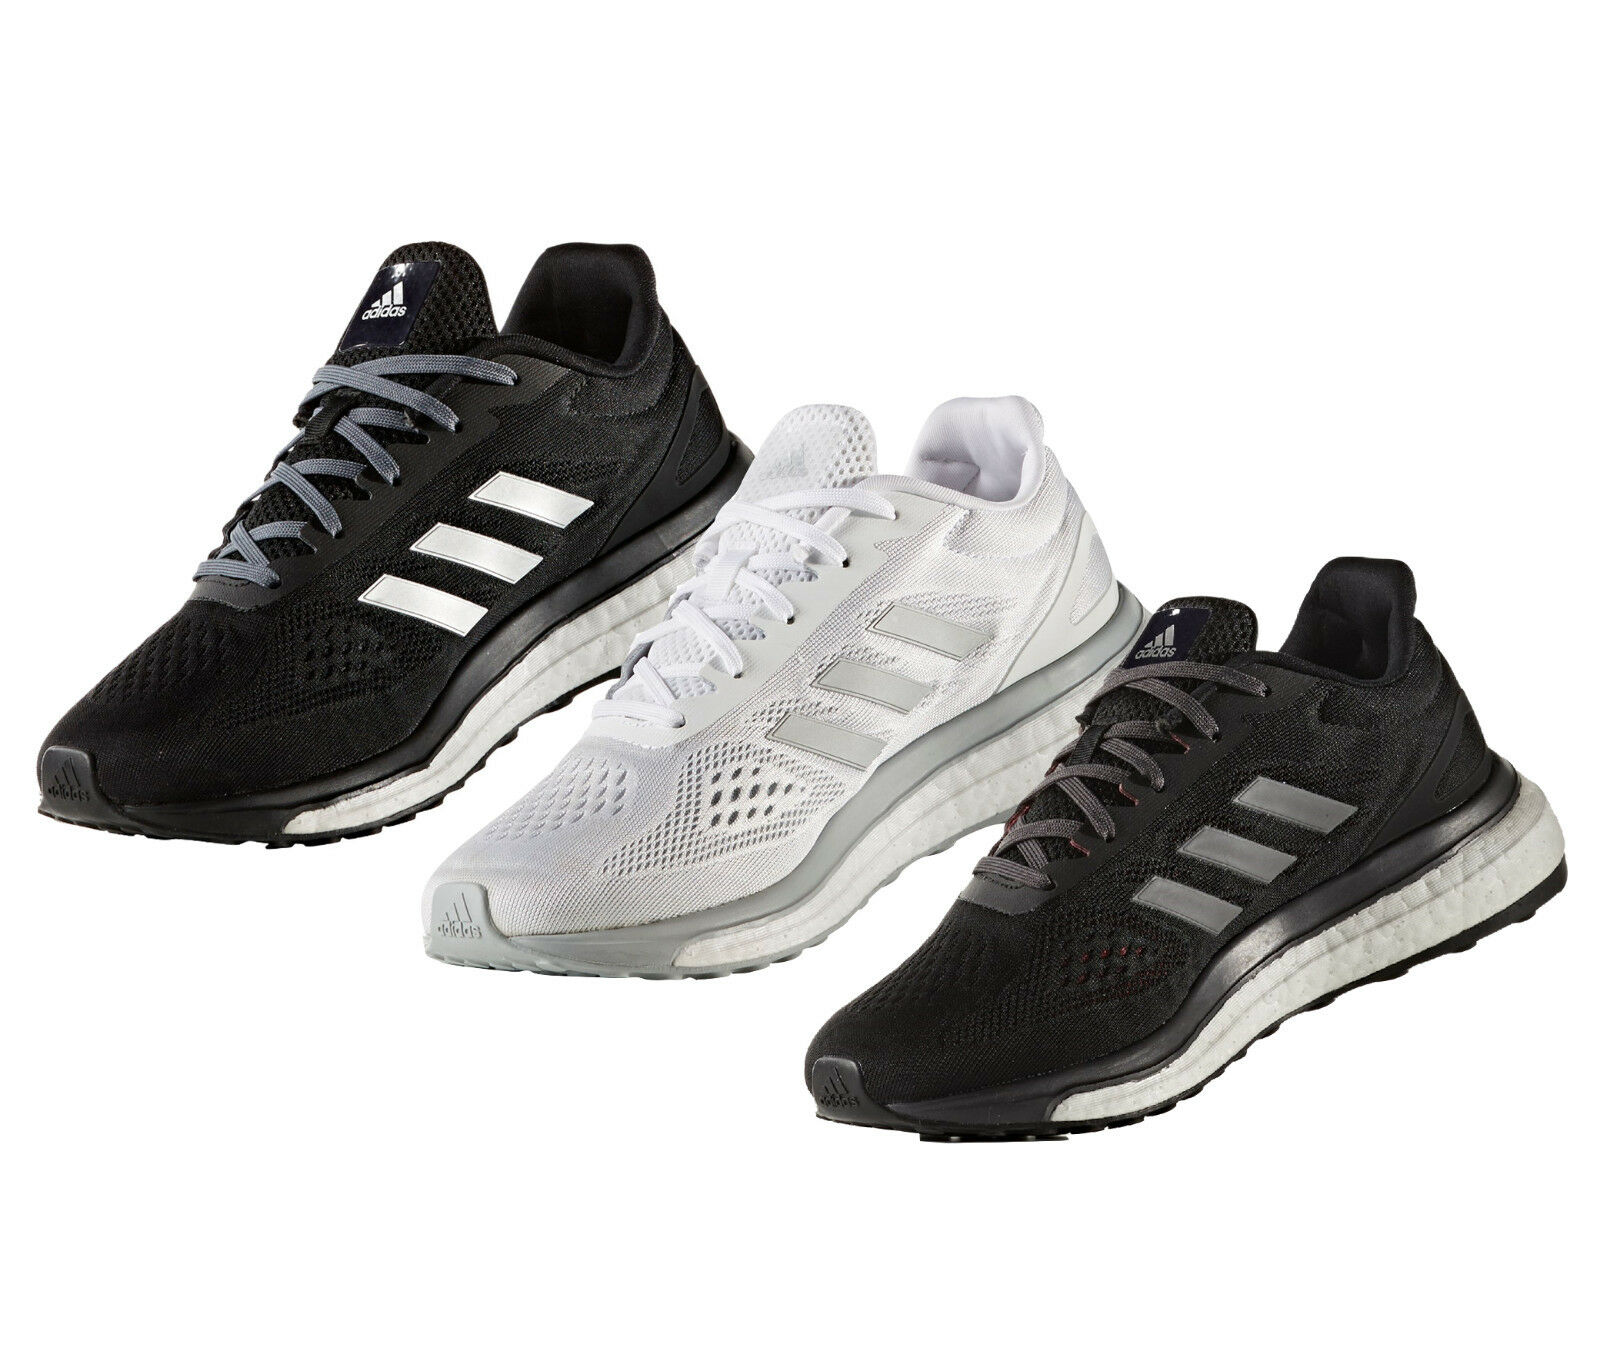 Women ADIDAS SONIC DRIVE BOOST Running shoes Adidas Boost Sneakers NEW